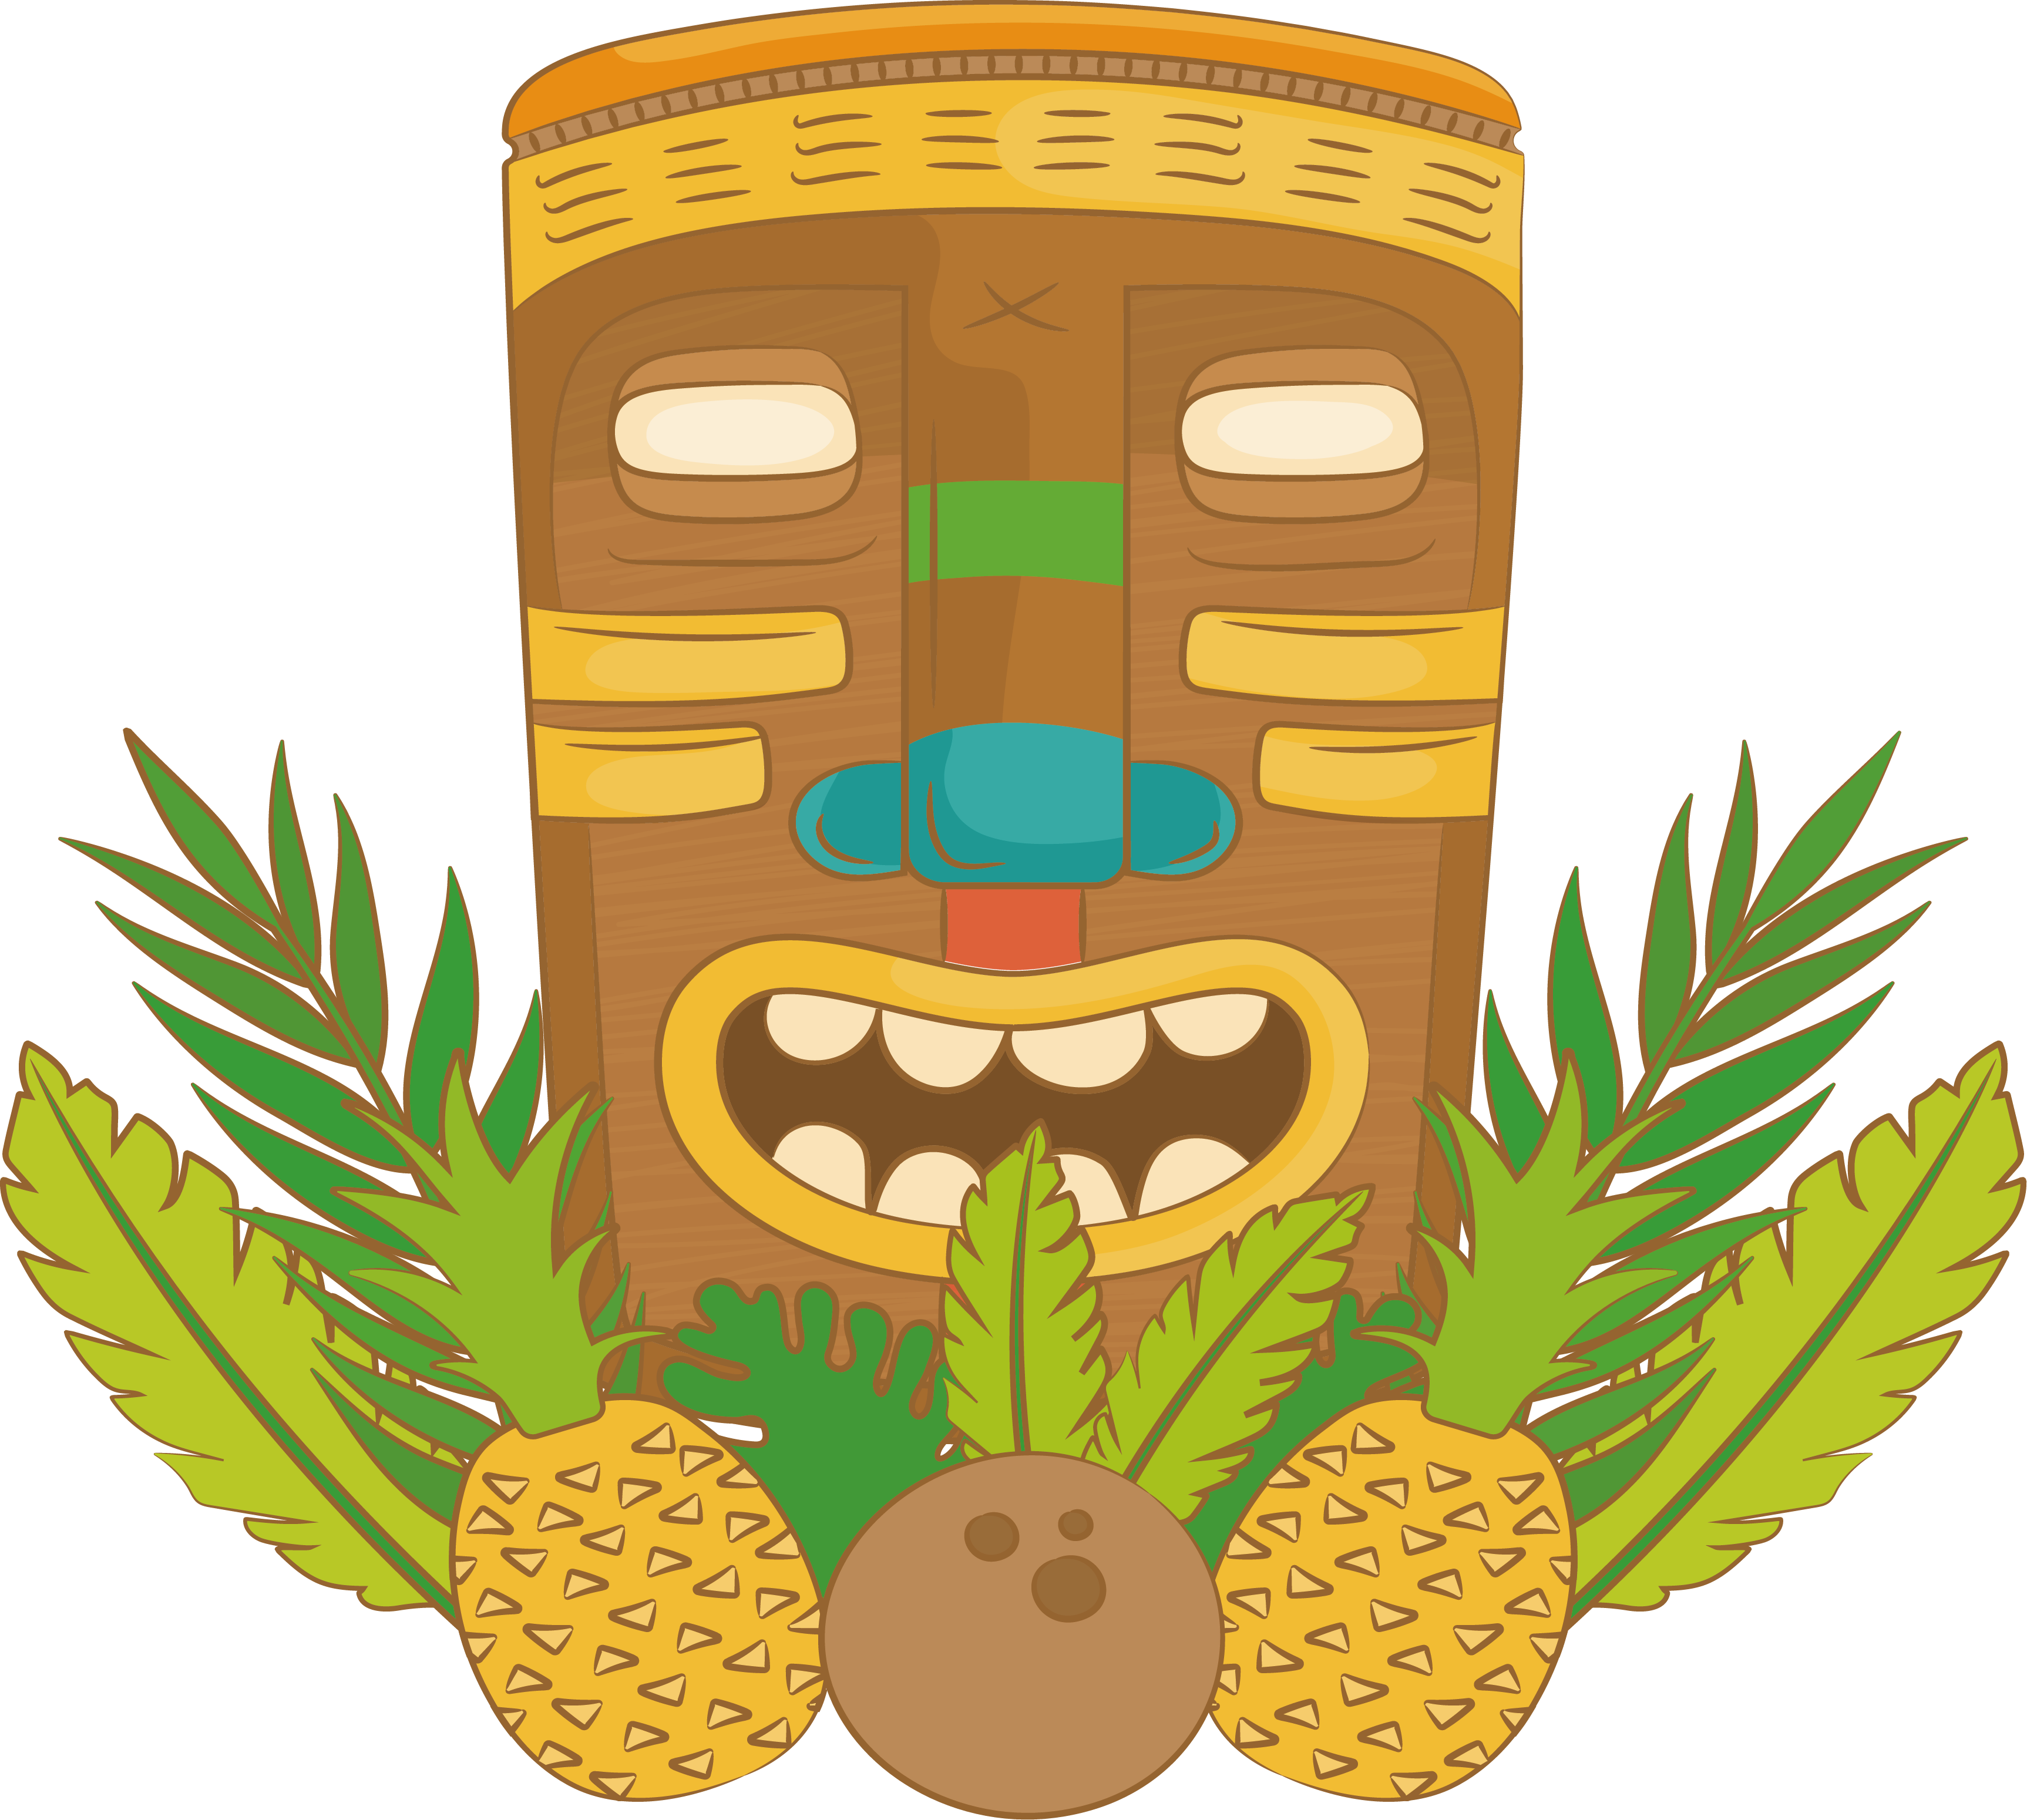 Pineapple clipart character. Adobe illustrator a decorative